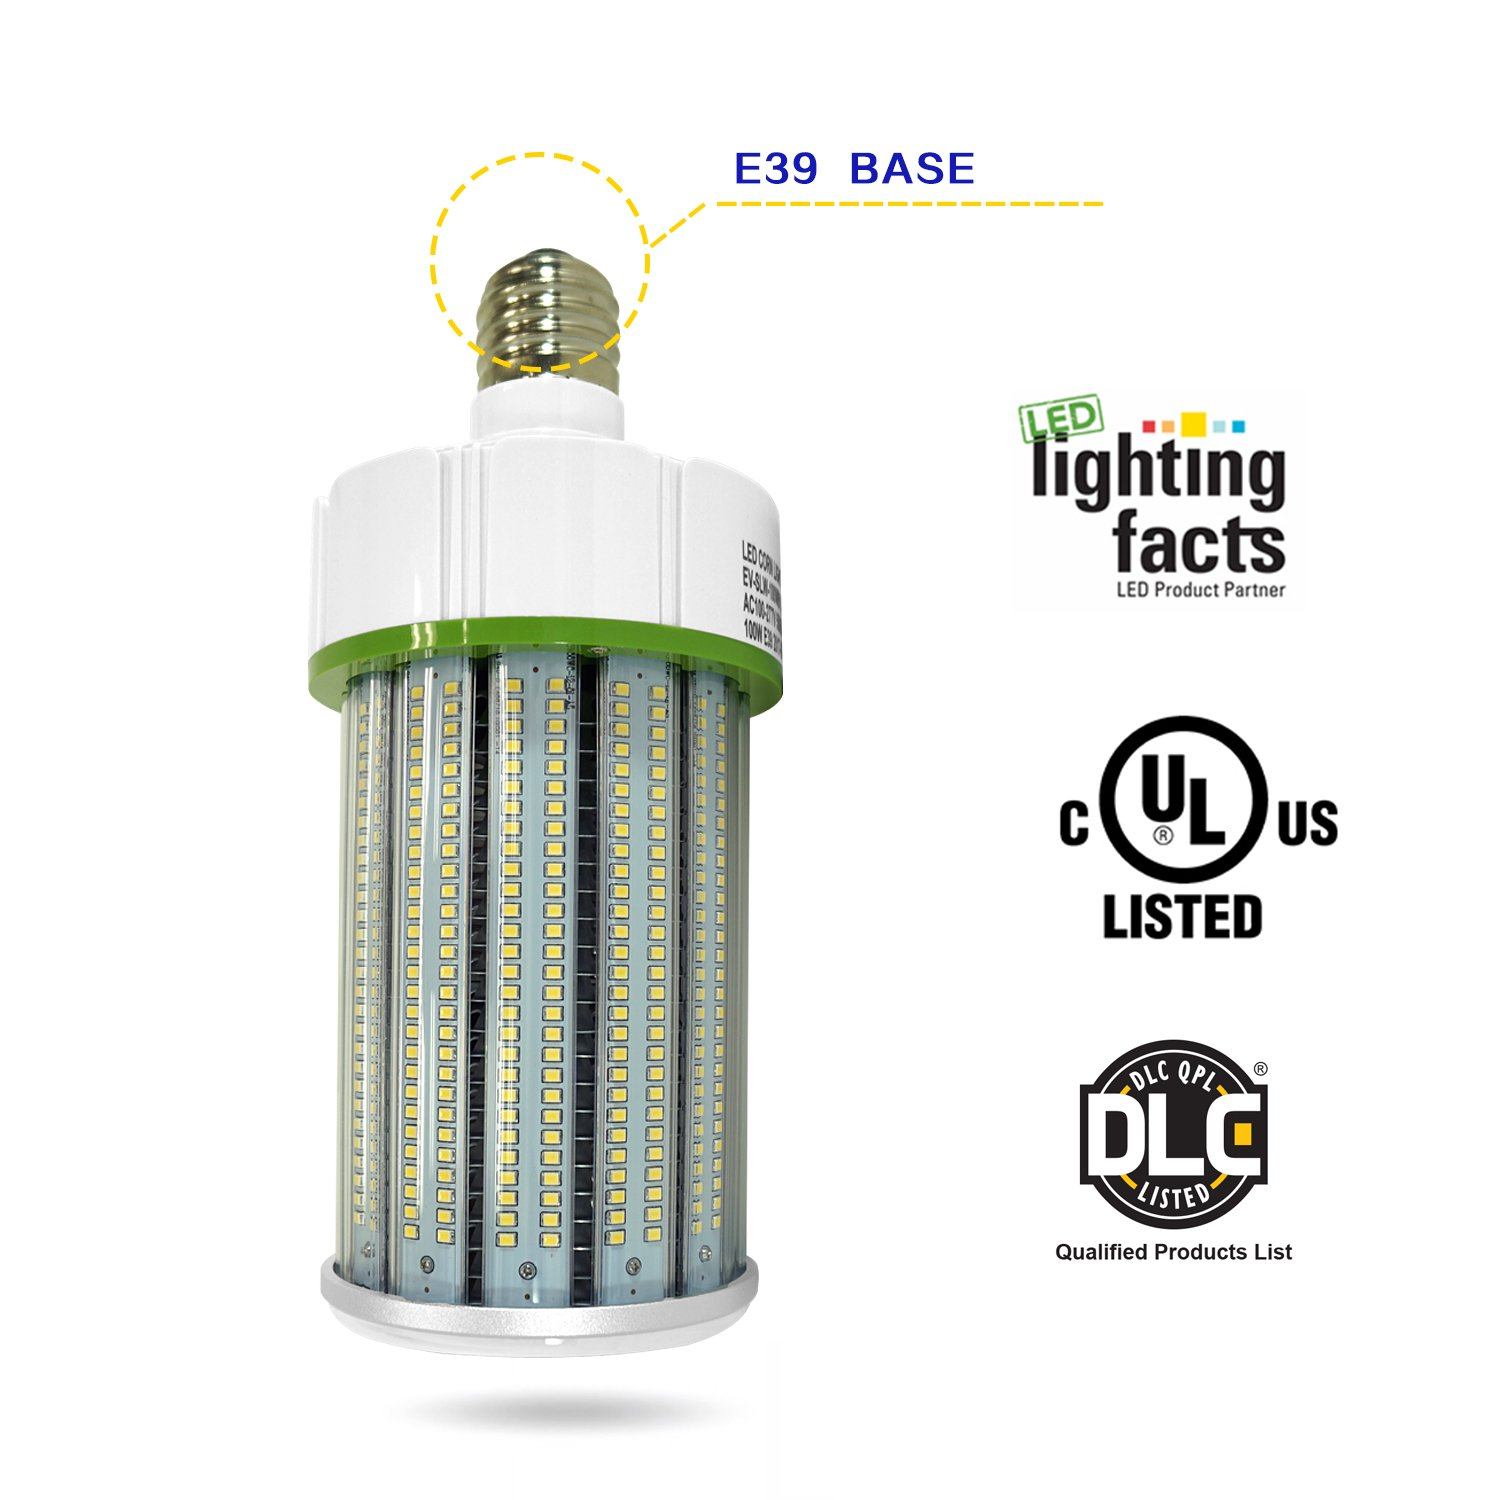 100Watt LED Corn Light Bulbs 12000lumen (600 to 700W Equivalent) Large Mogul Screw E39 Base Daylight 5000K LED Retrofit Lamp,360 Degree Flood Light, Replacement for Metal Halide Bulb, HID, CFL, Hps